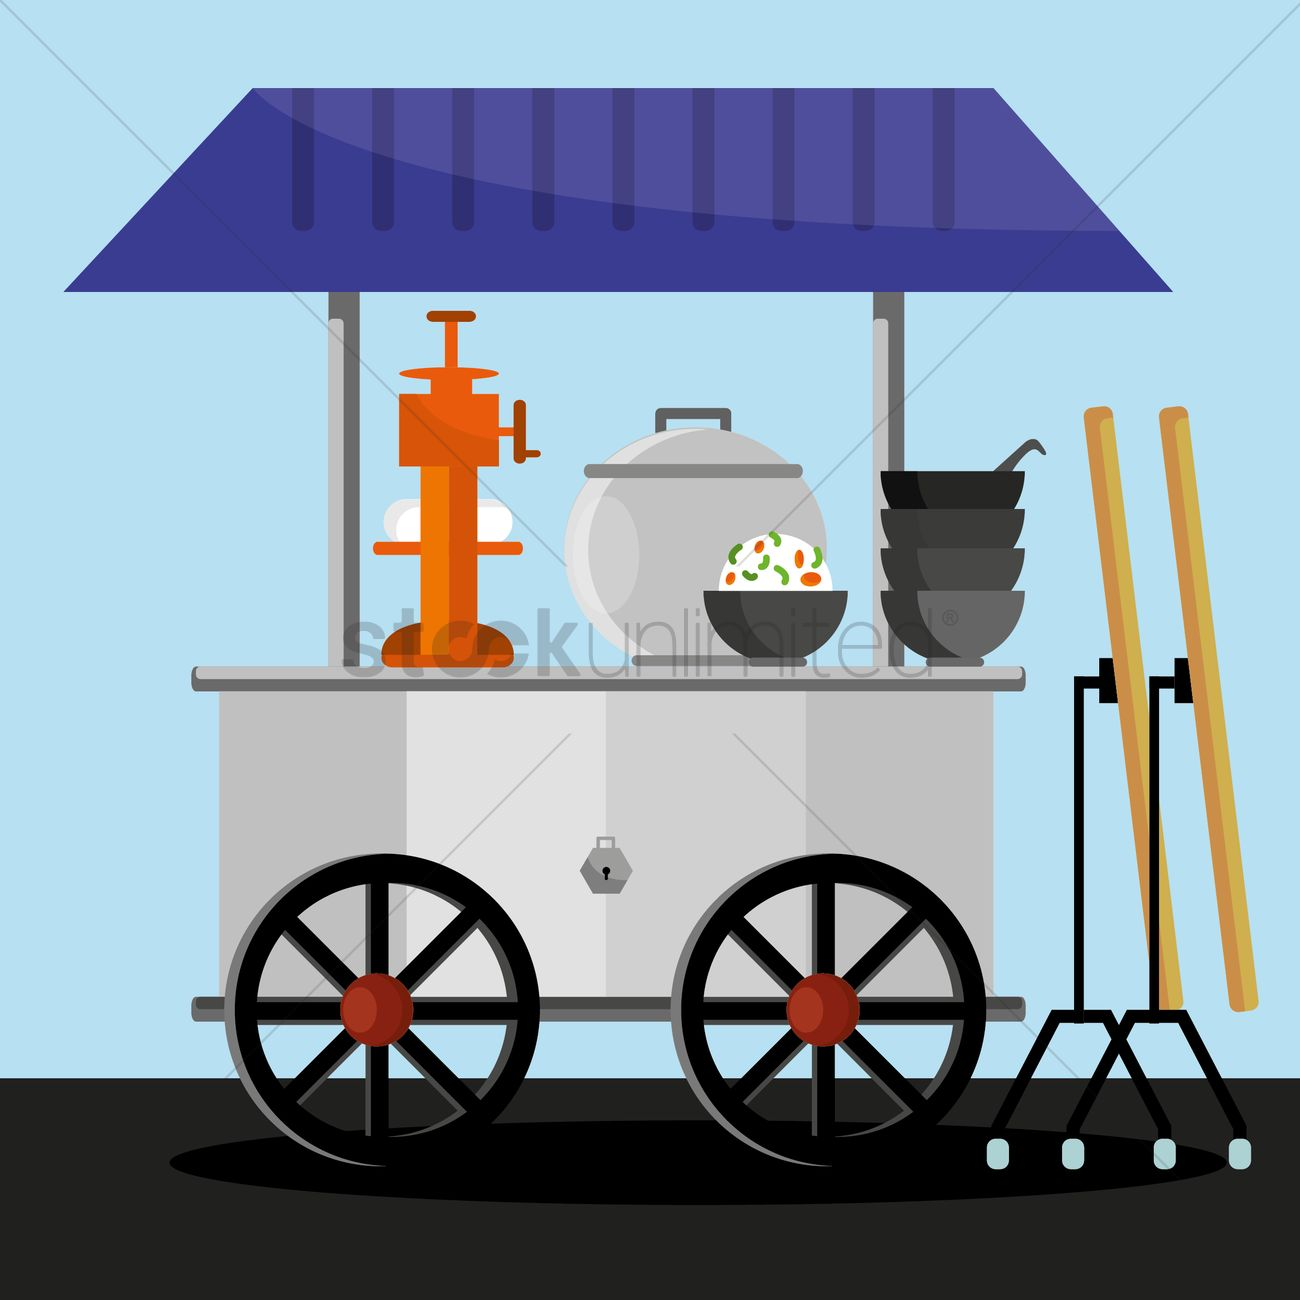 Food stall cart Vector Image.